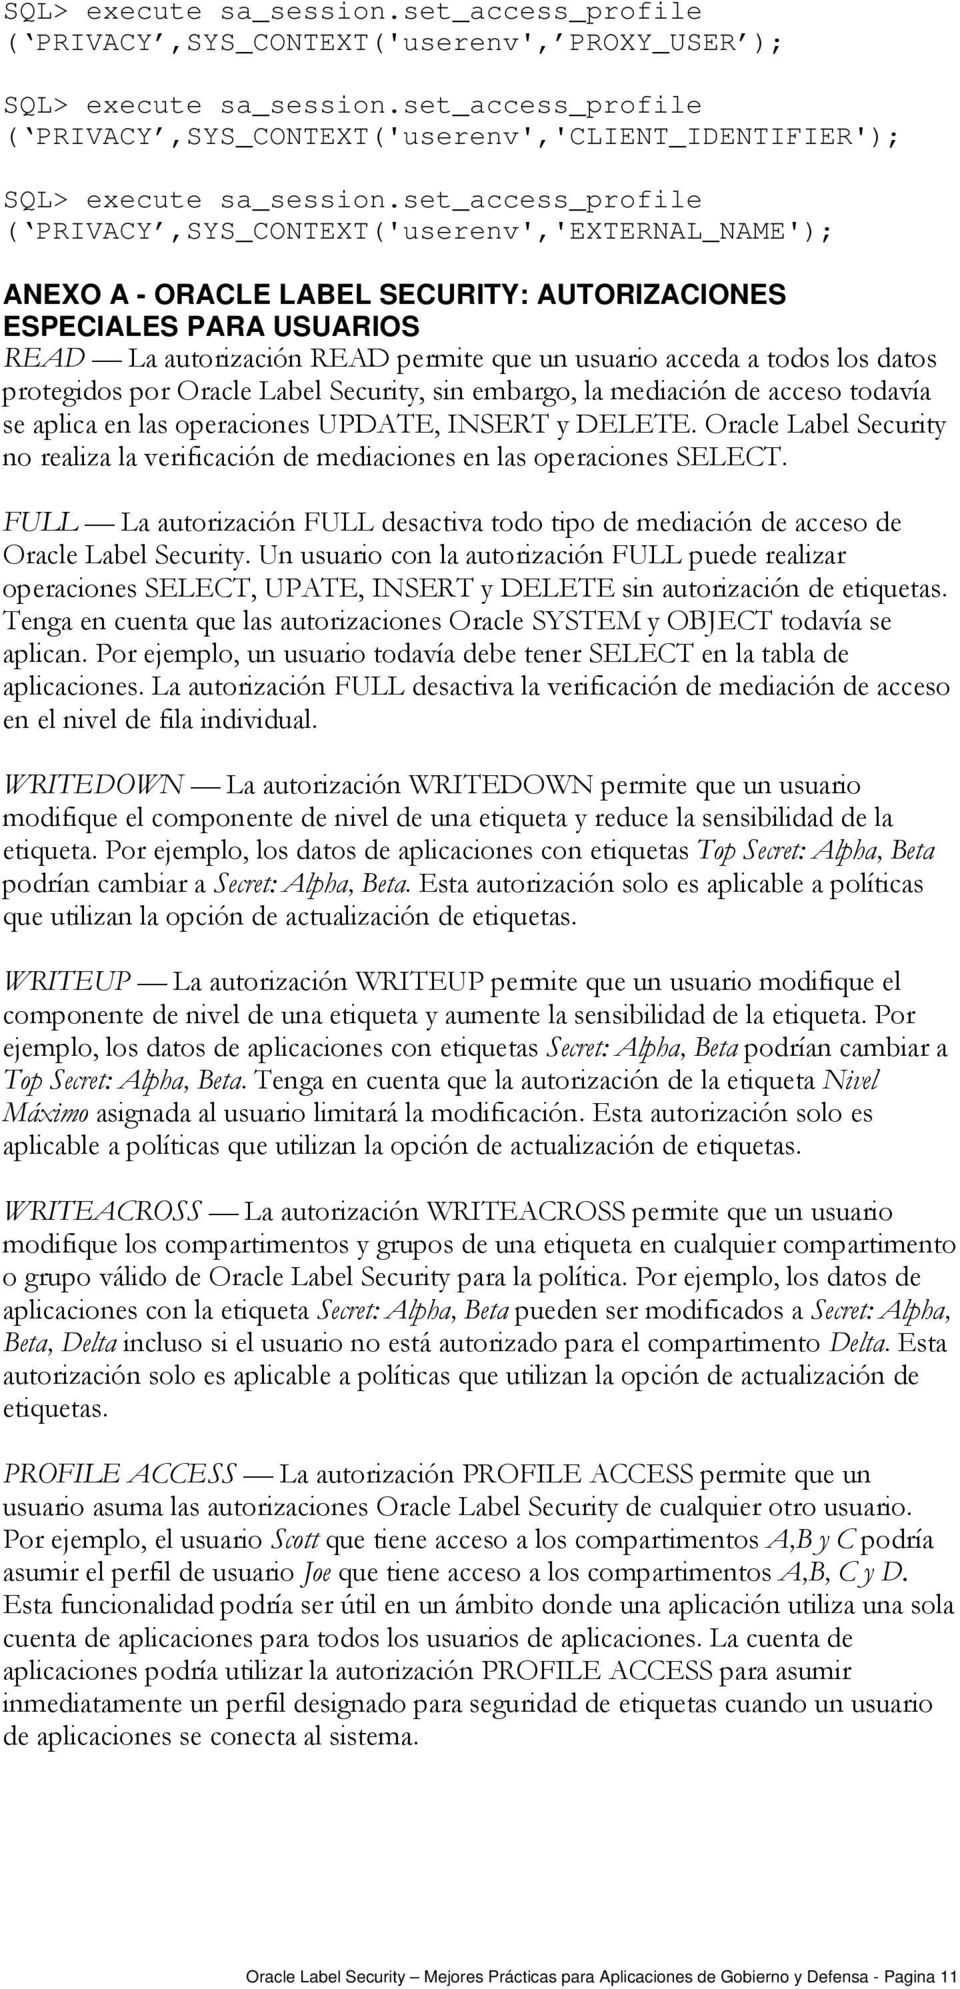 set_access_profile ( PRIVACY,SYS_CONTEXT('userenv','EXTERNAL_NAME'); ANEXO A - ORACLE LABEL SECURITY: AUTORIZACIONES ESPECIALES PARA USUARIOS READ La autorización READ permite que un usuario acceda a